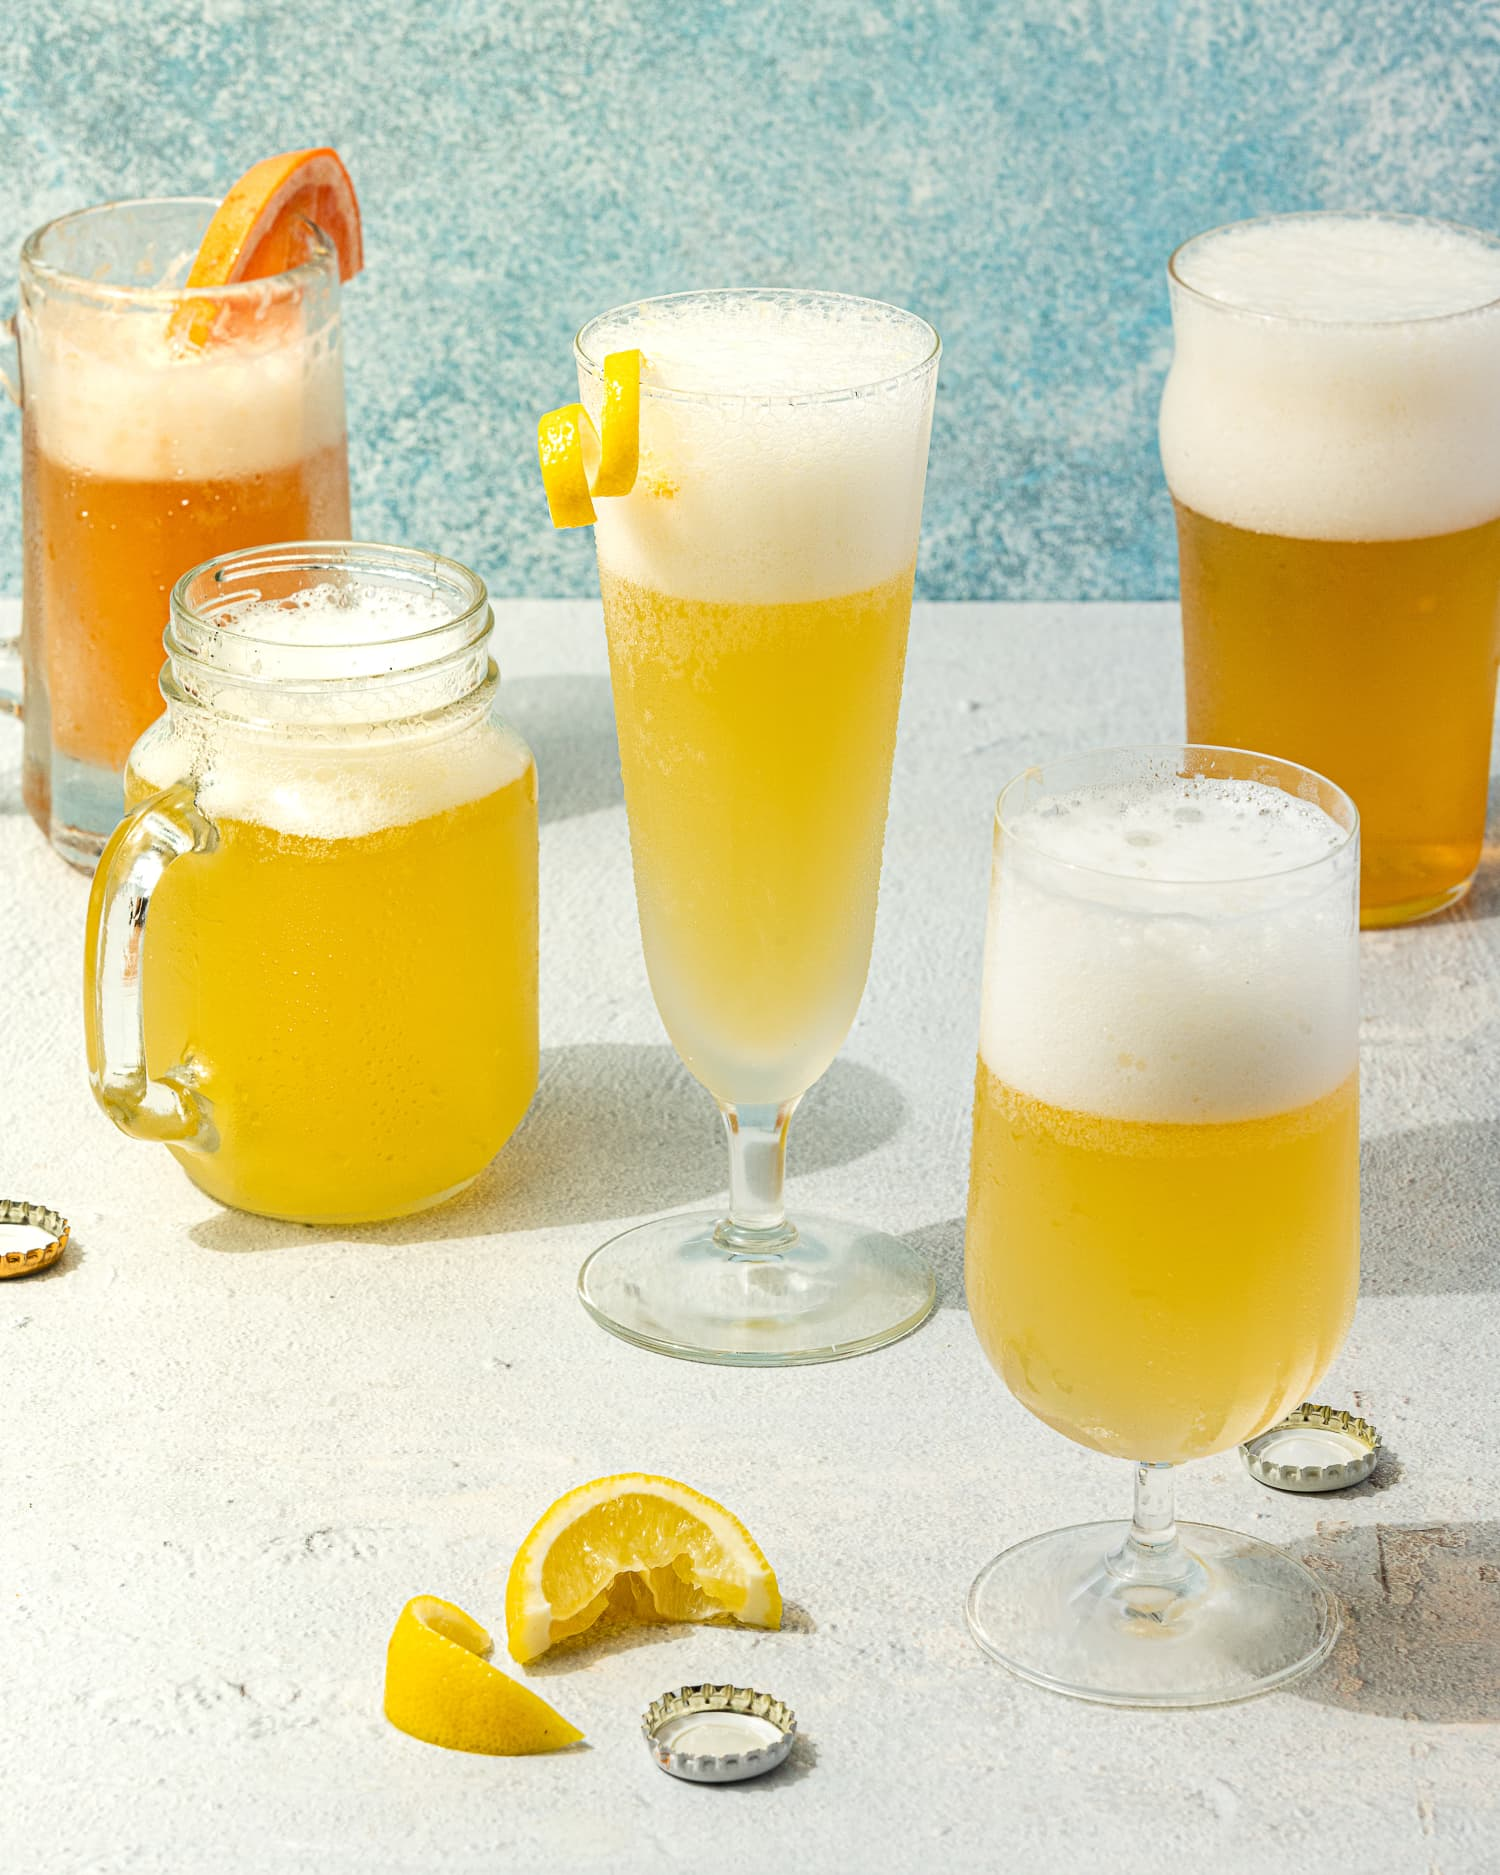 This Easy, Foolproof Shandy Recipe Is Endlessly Customizable